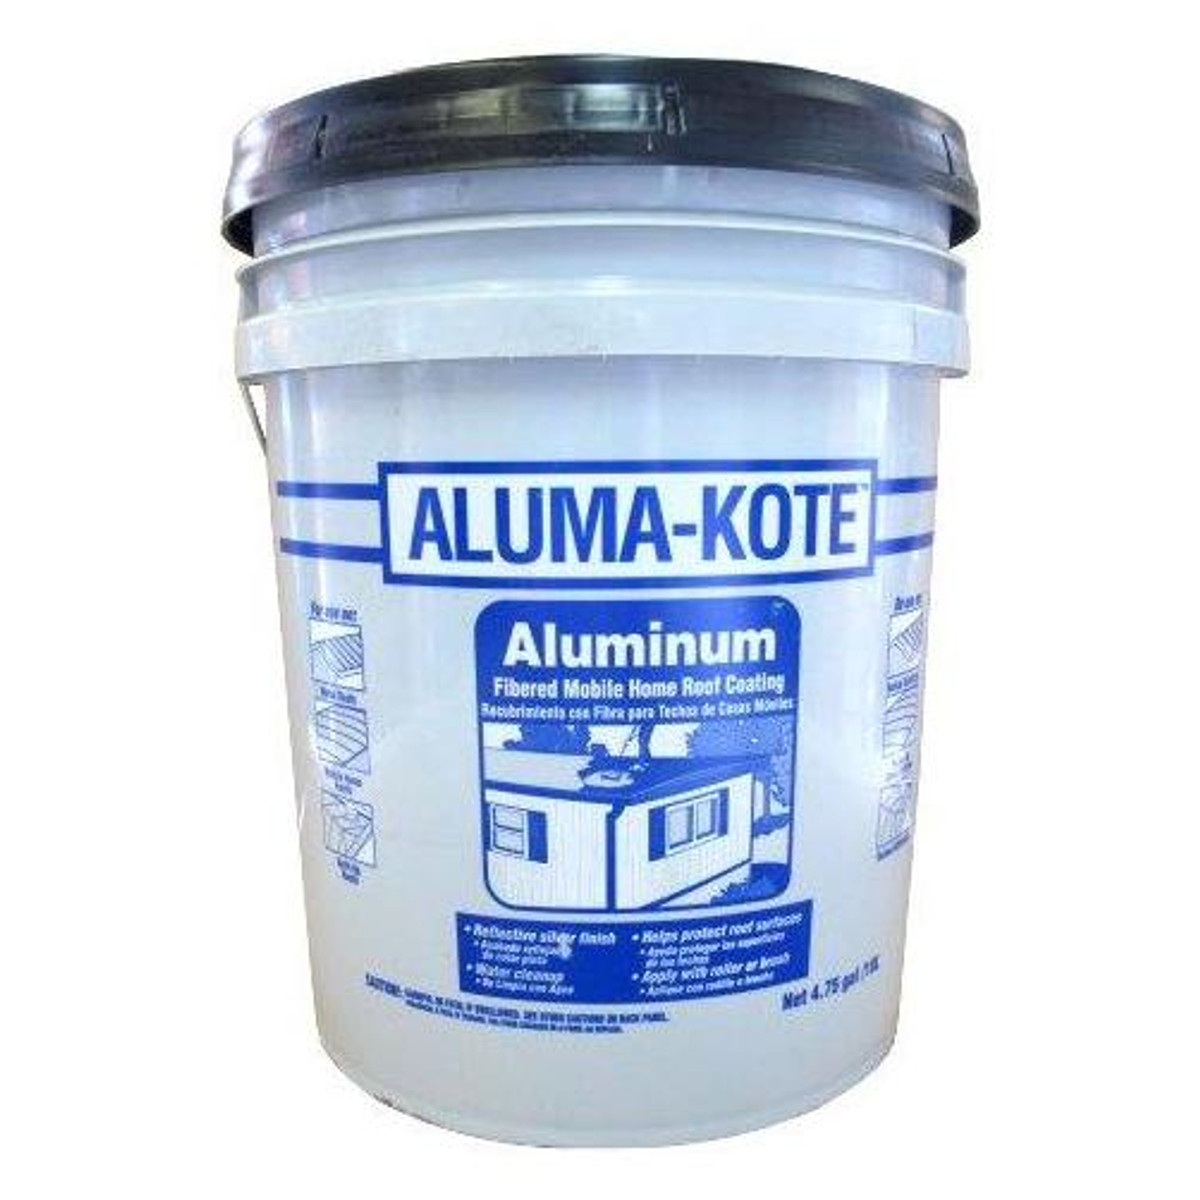 4 75 Gallon Aluma Kote Aluminum Roof Paint Available For Local Pick Up Only Greschlers Hardware